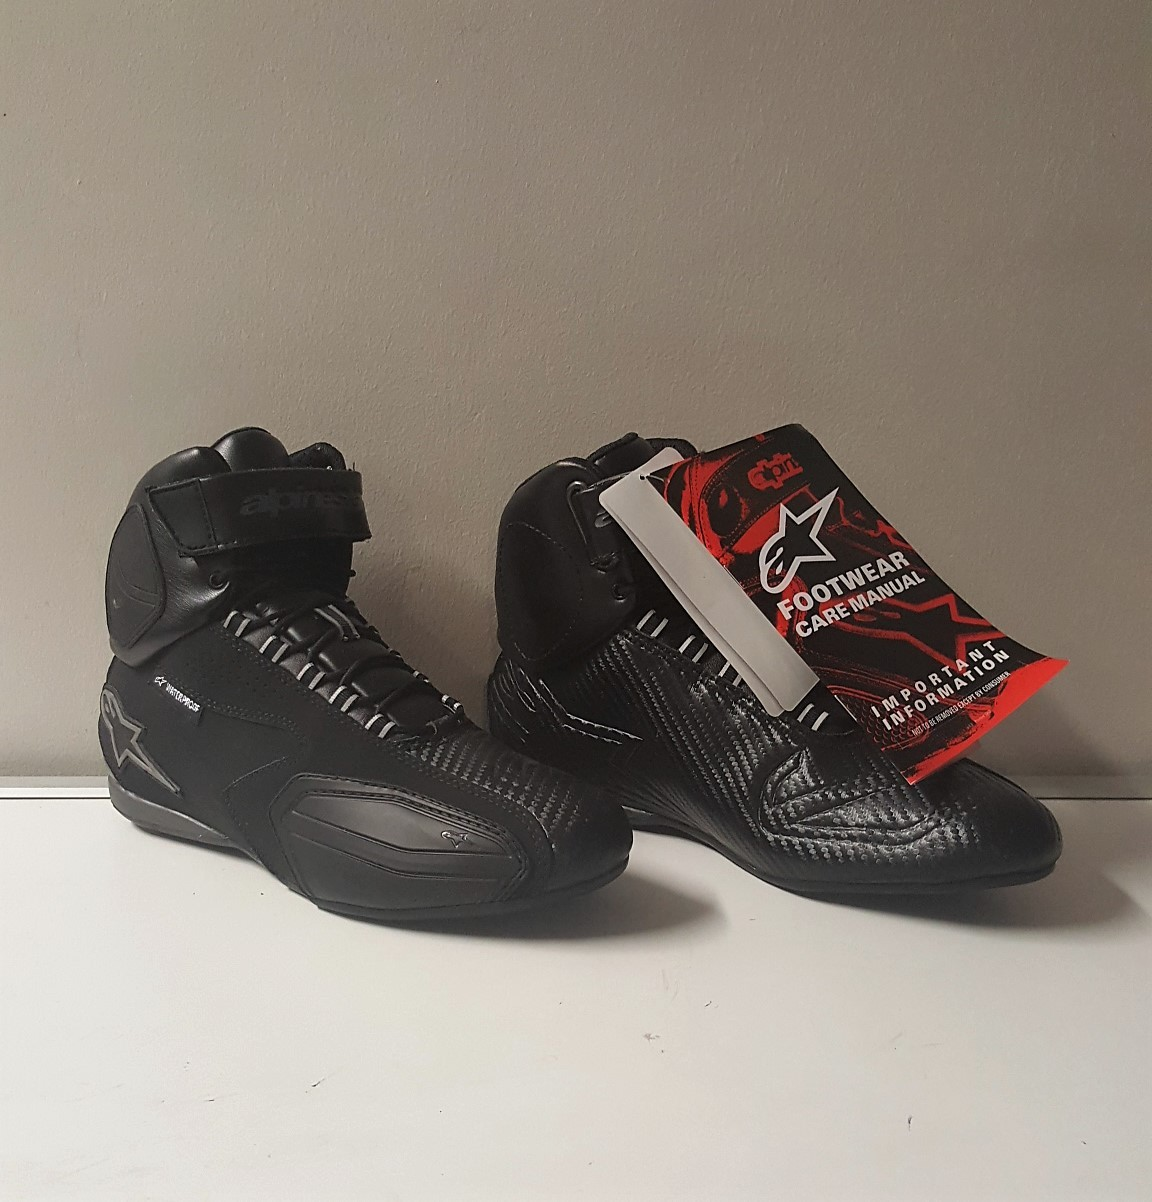 Faster WP Shoes Alpinestars Taille 42